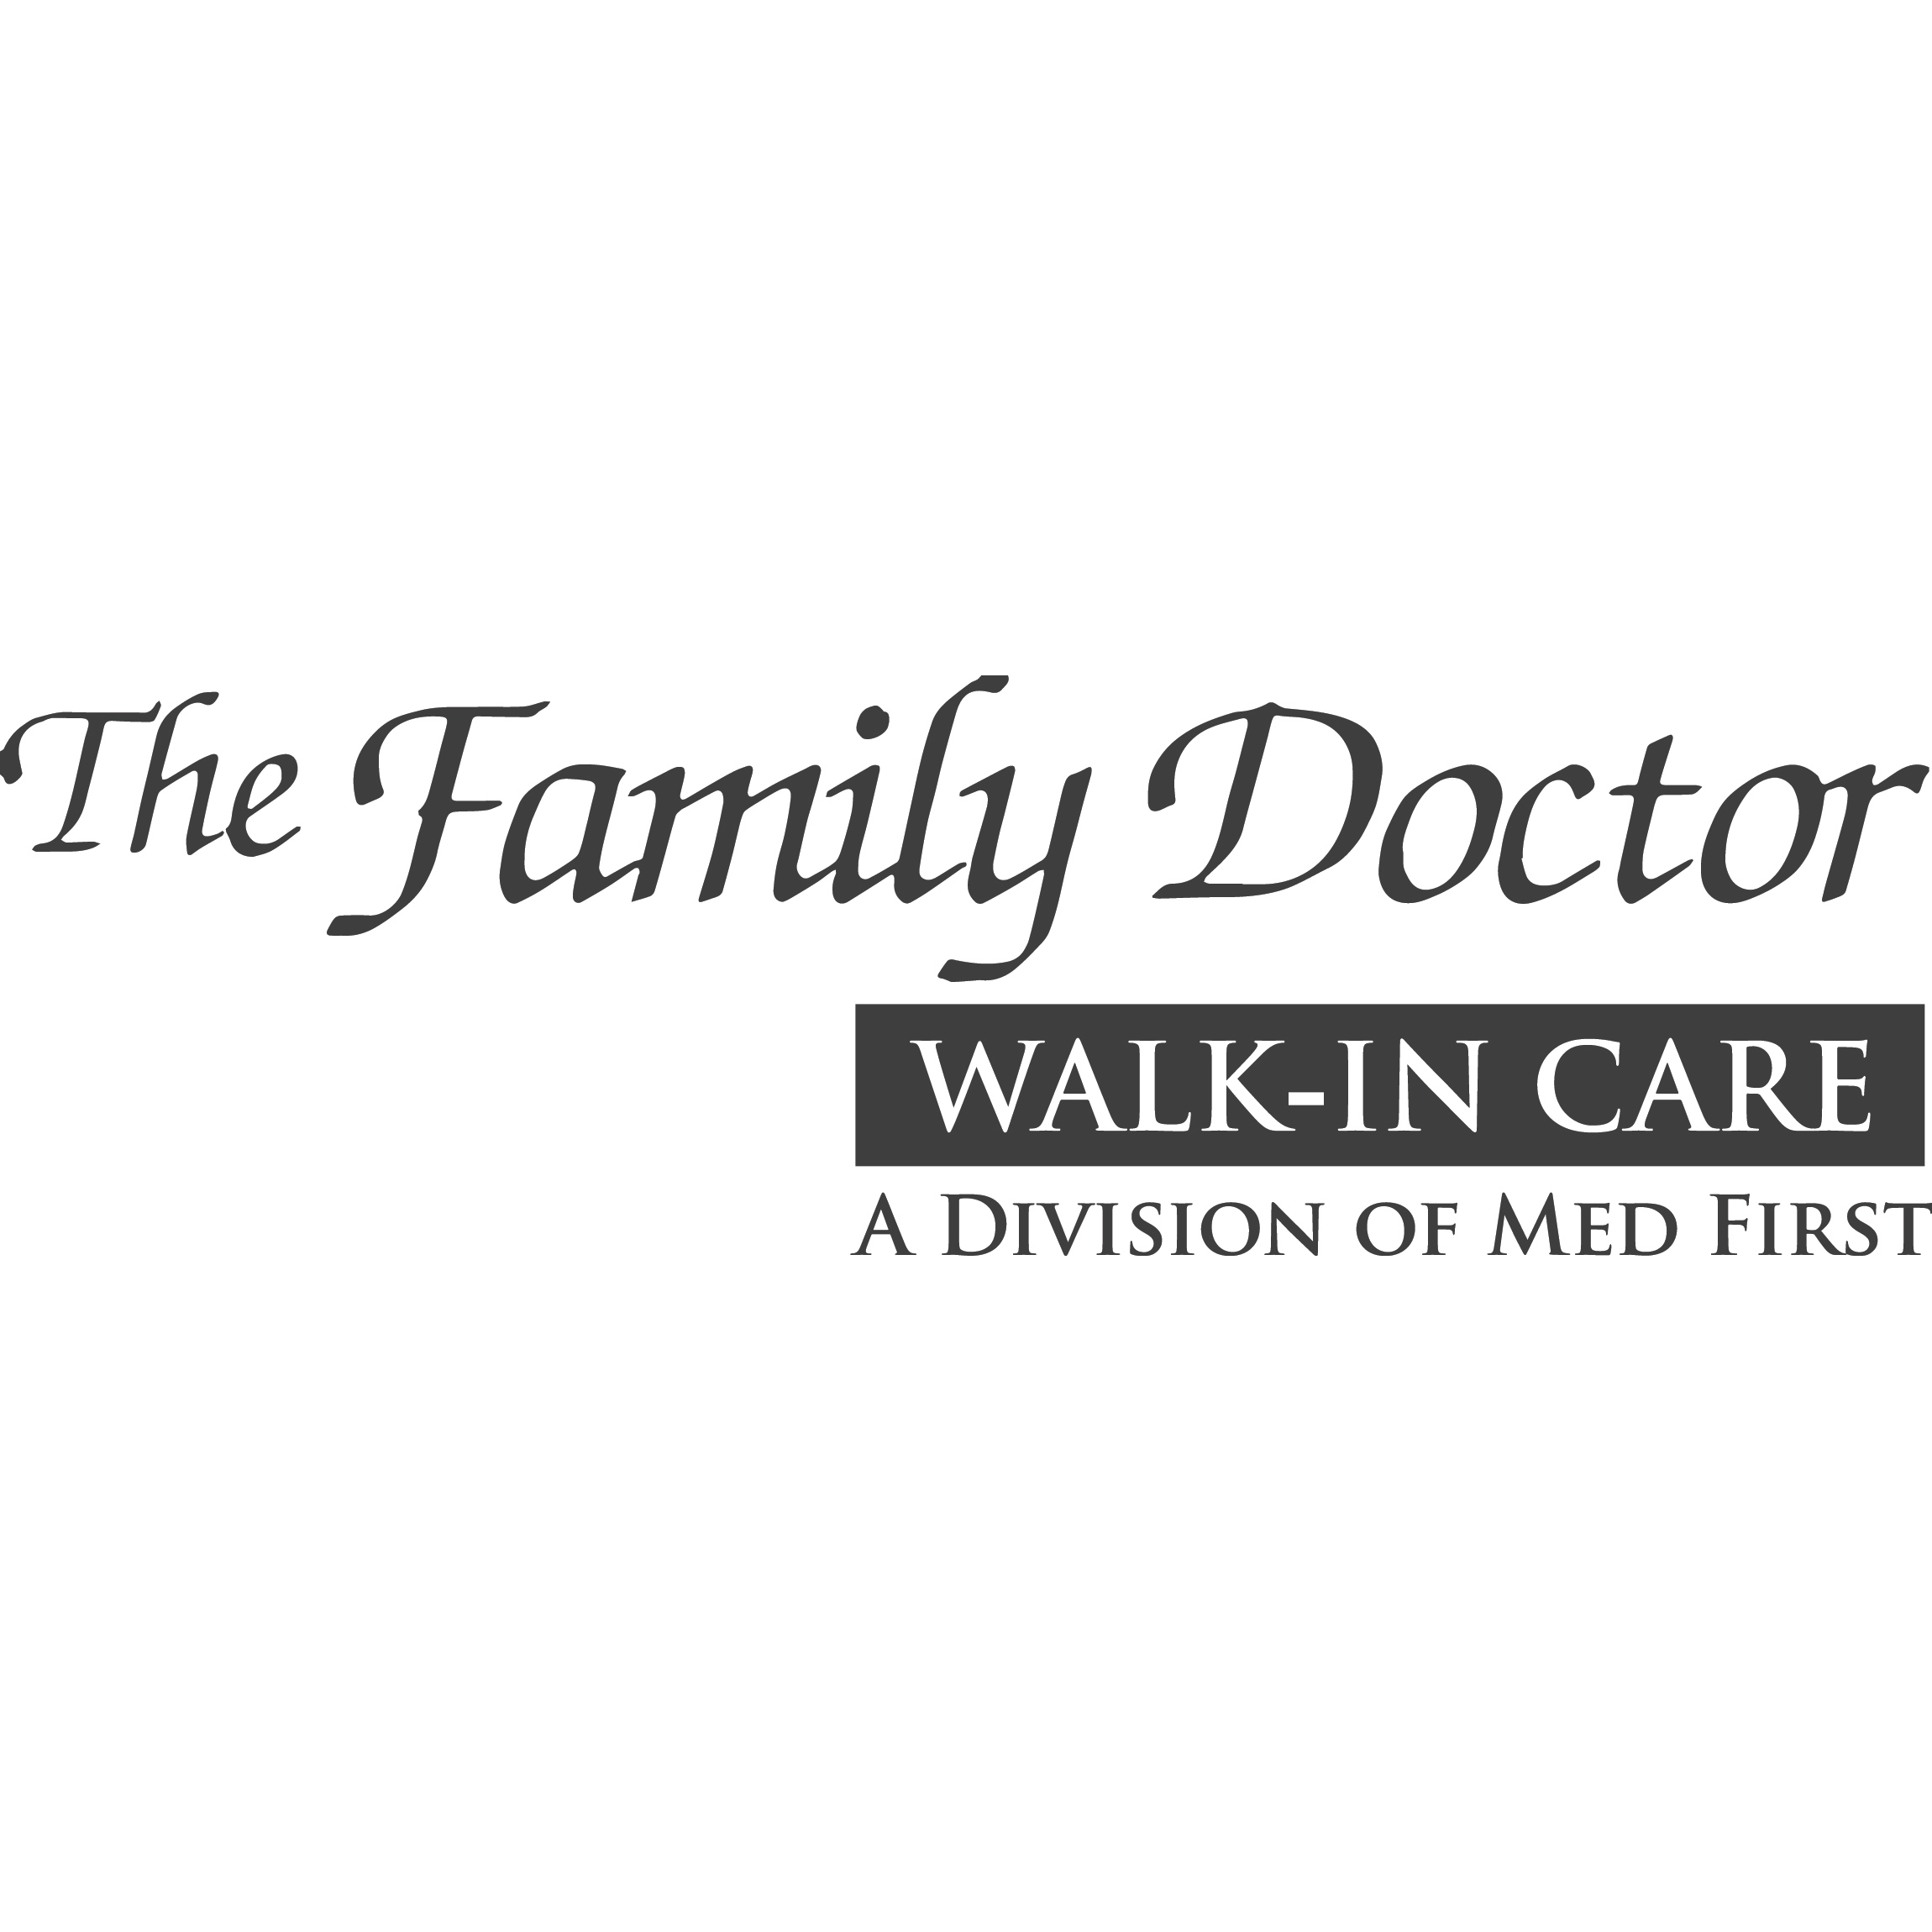 The Family Doctor - Walk In Care